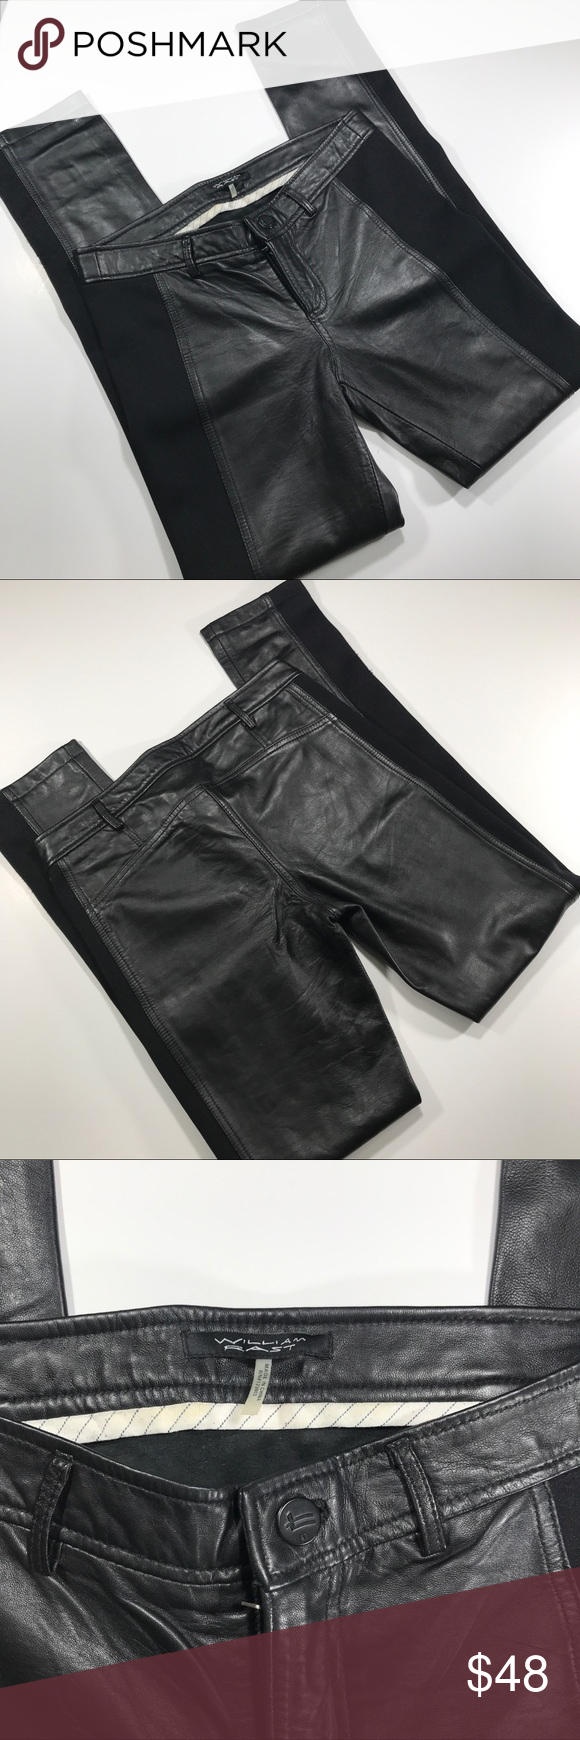 8a7bf4e7955b5 William Rast women's leather pants 26 Pre-owned excellent condition used a  couple hours William